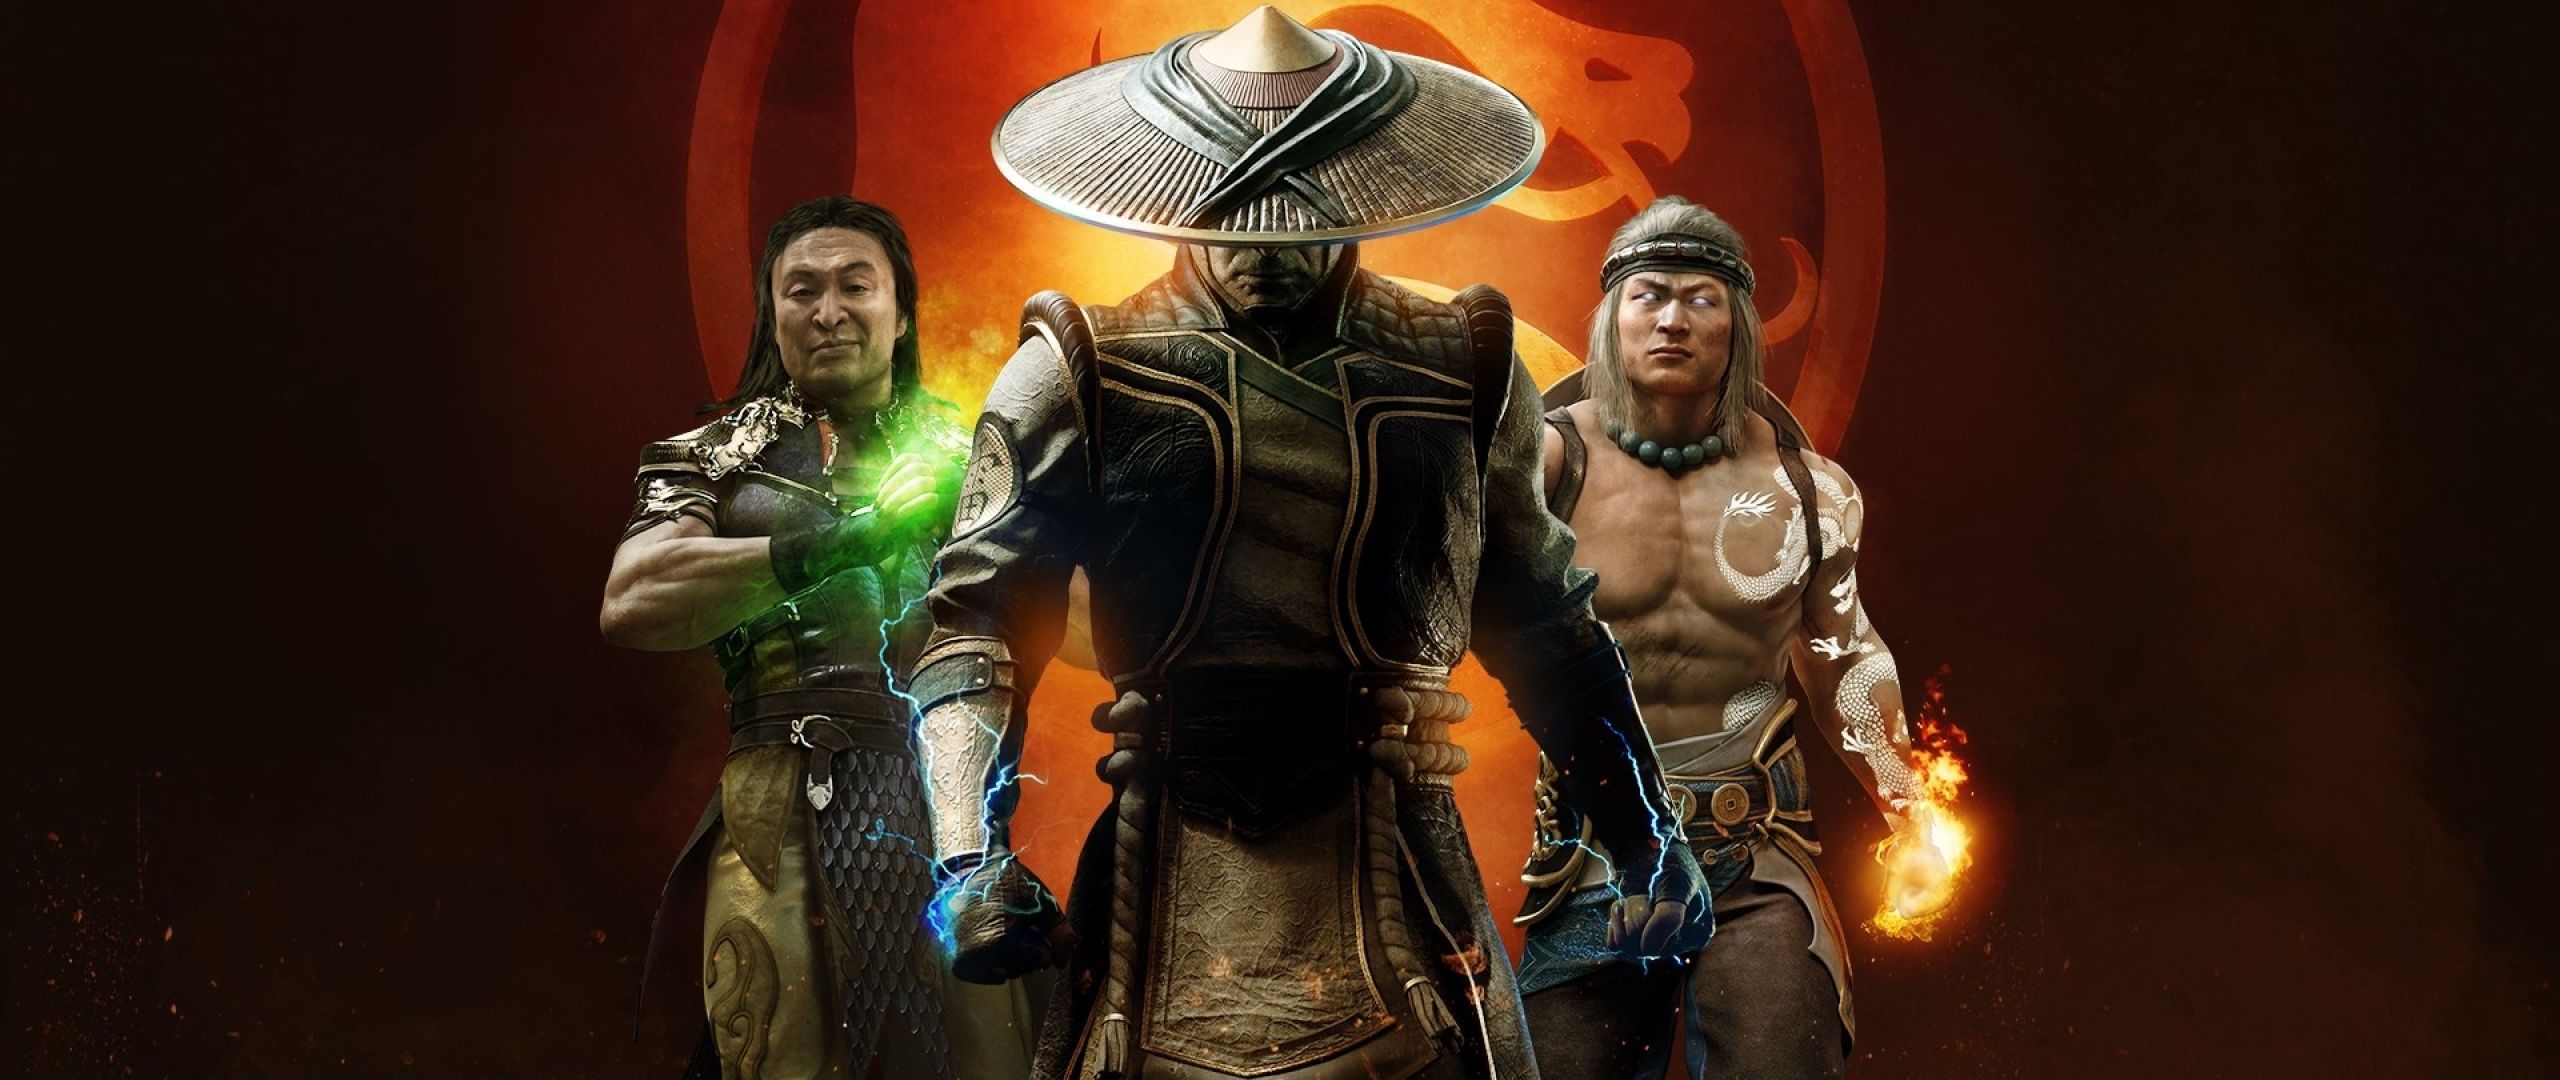 wallpapersden.com mortal kombat 11 aftermath